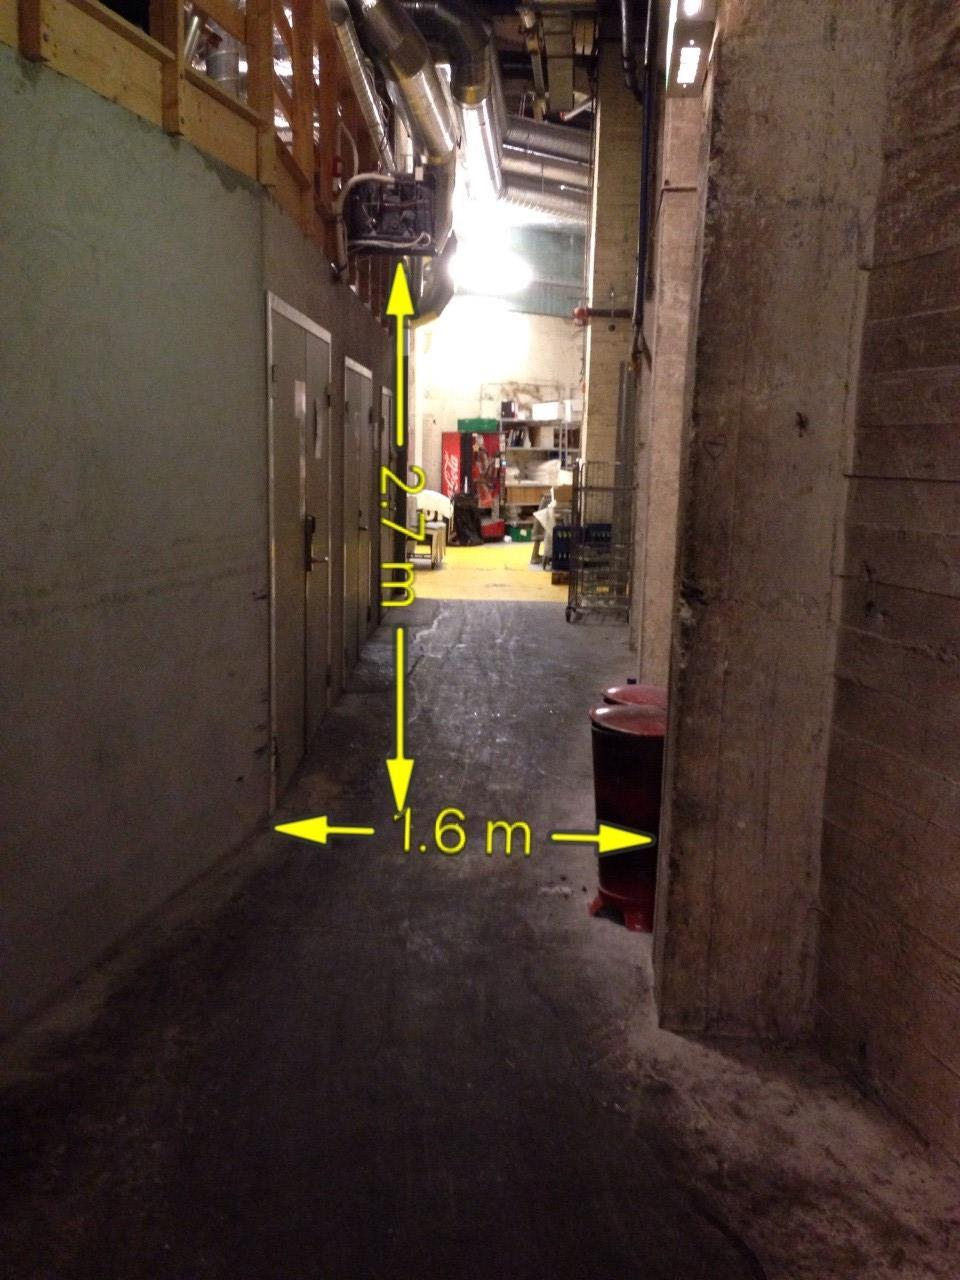 Lift 2: 2.000 kg, width 2,15 m, length 3,35 m, height limited by passageway, 2,7m. NB!